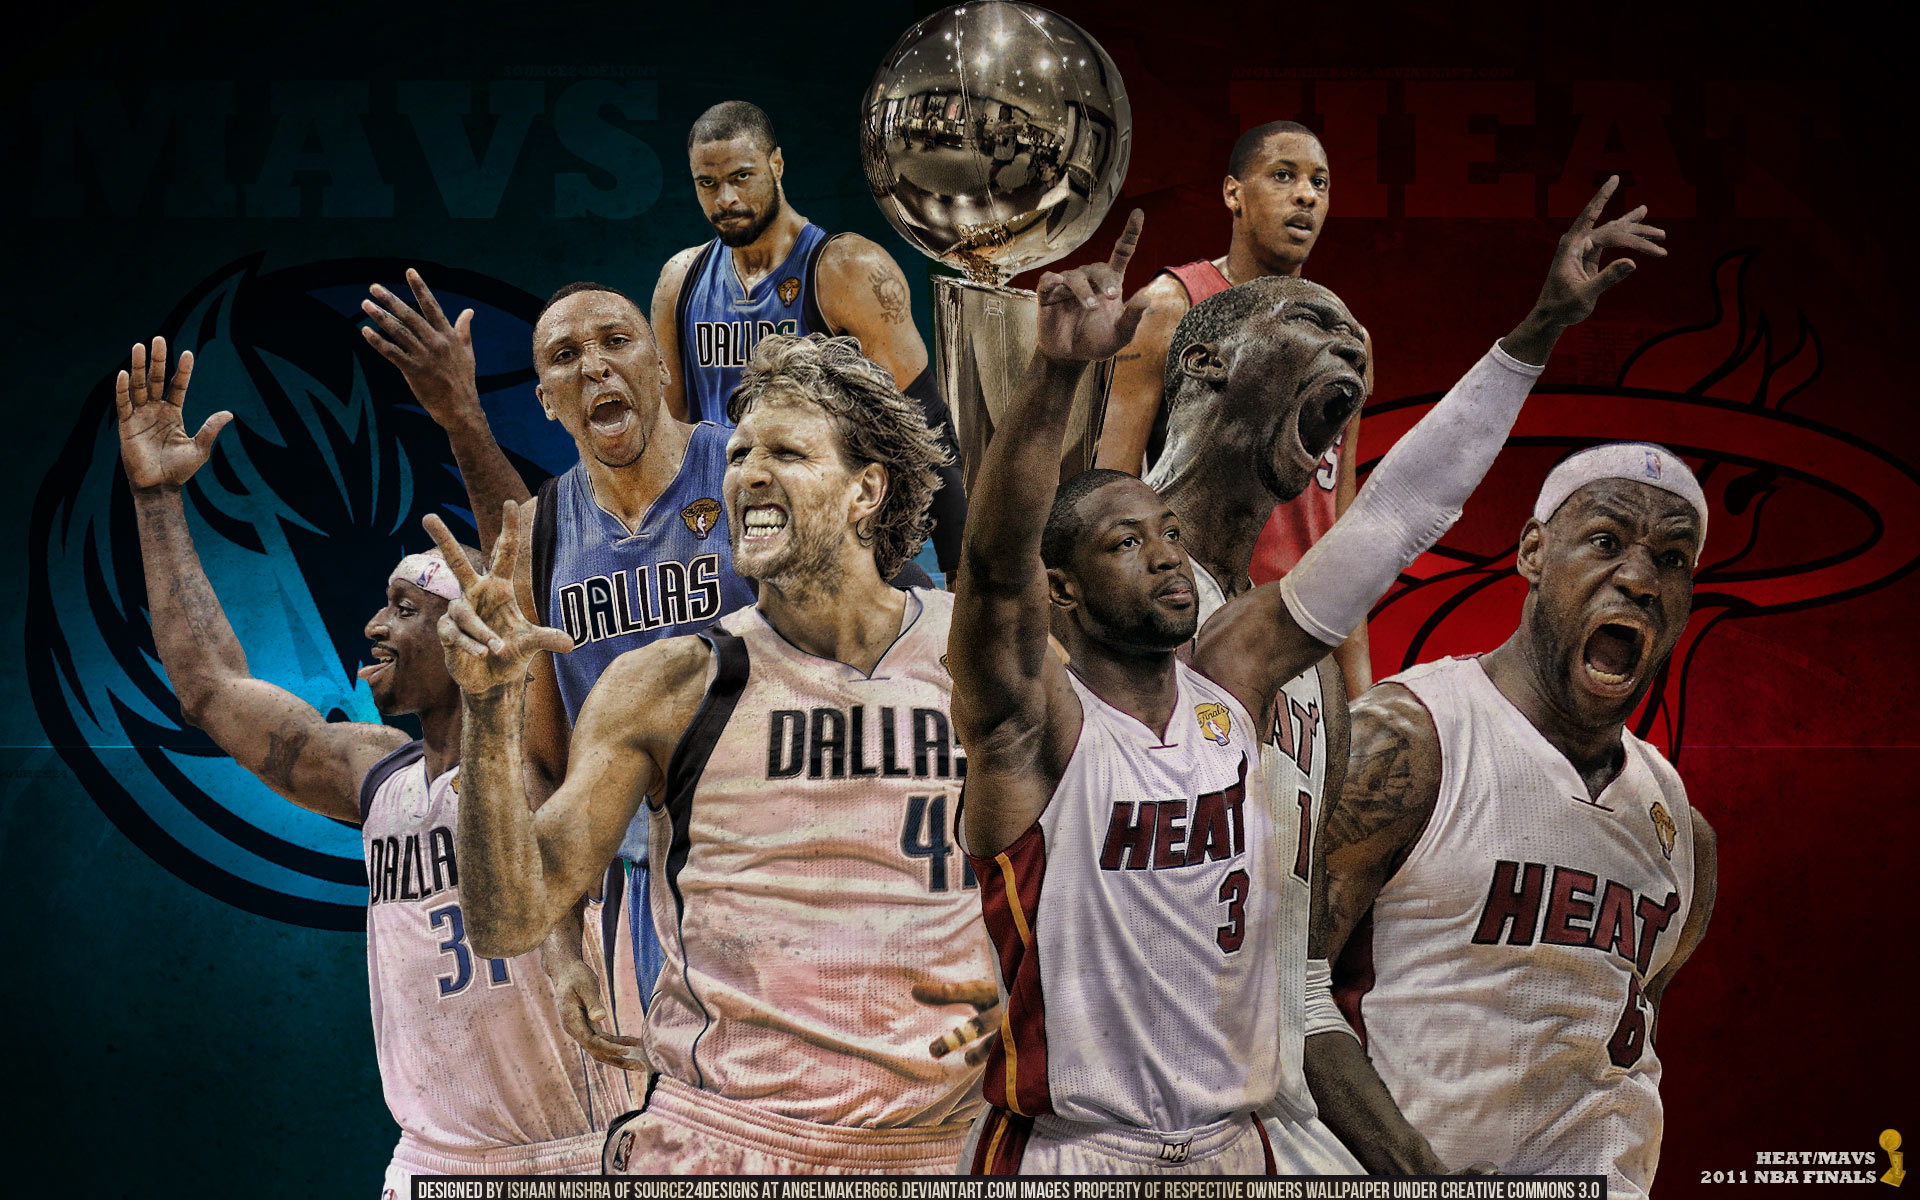 Dirk Nowitzki Wallpaper Hd Heat Mavs 2011 Nba Finals Widescreen Wallpaper